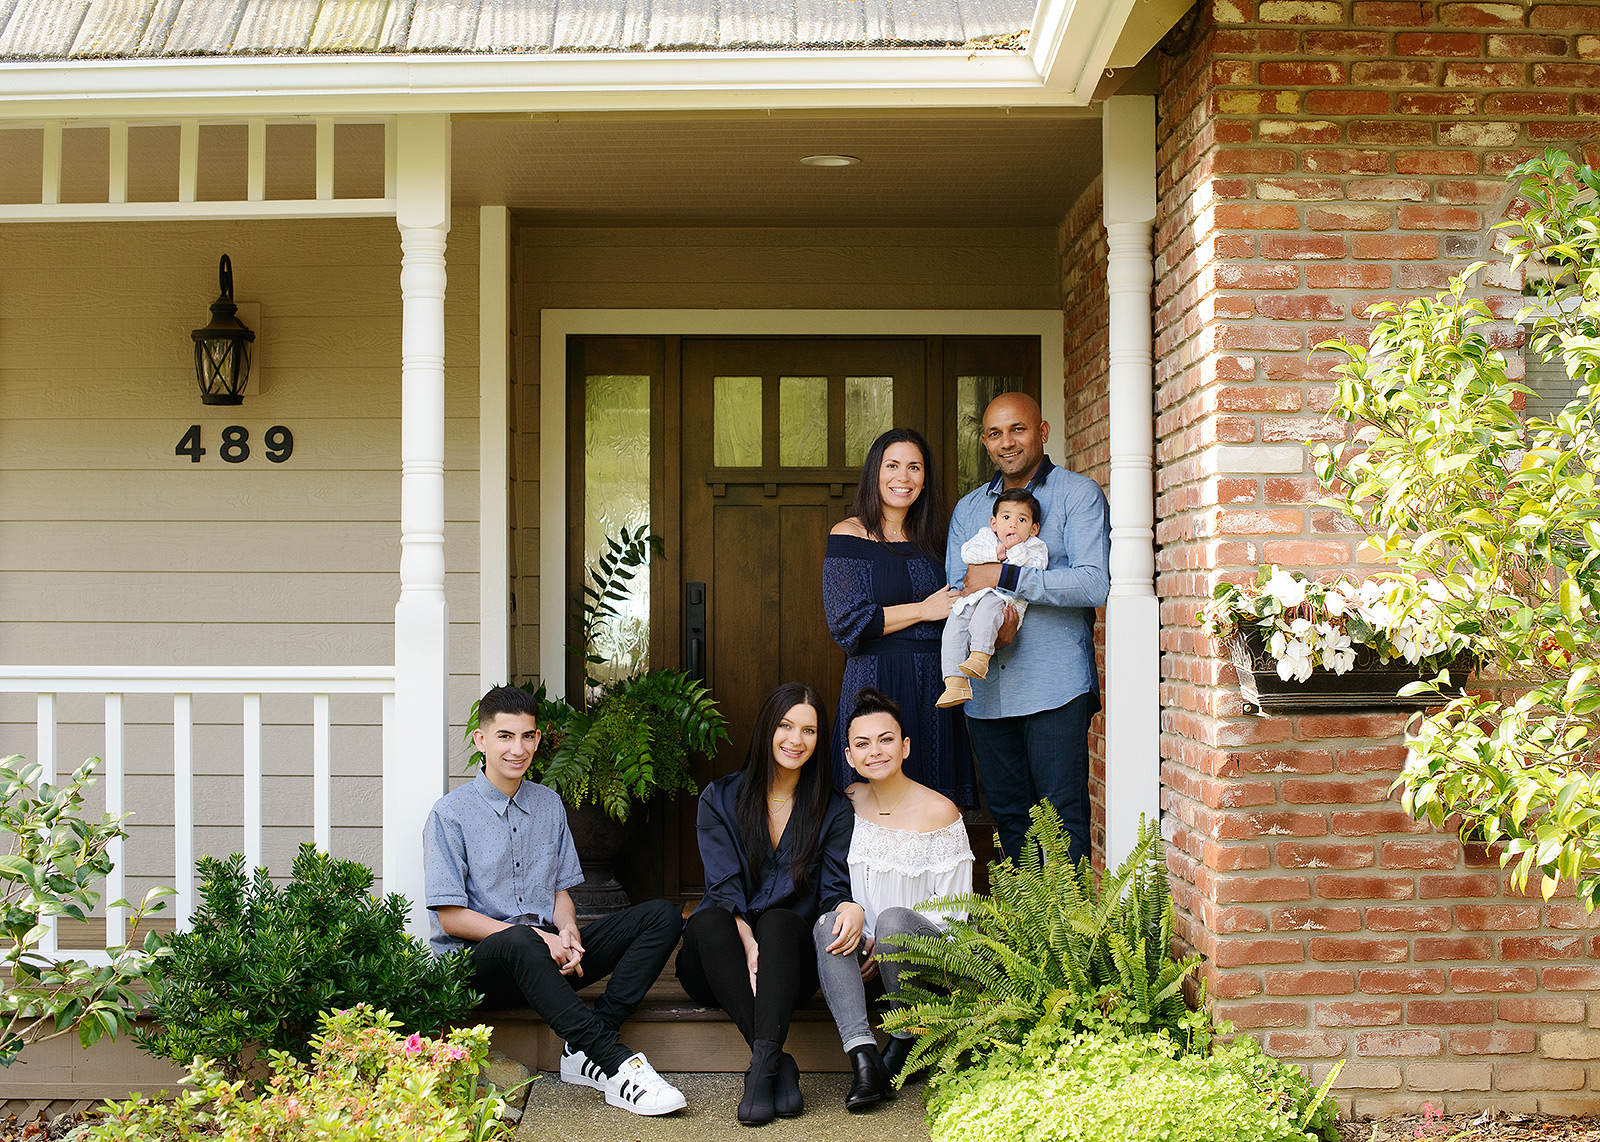 Family picture in front of door with a brick and wood background